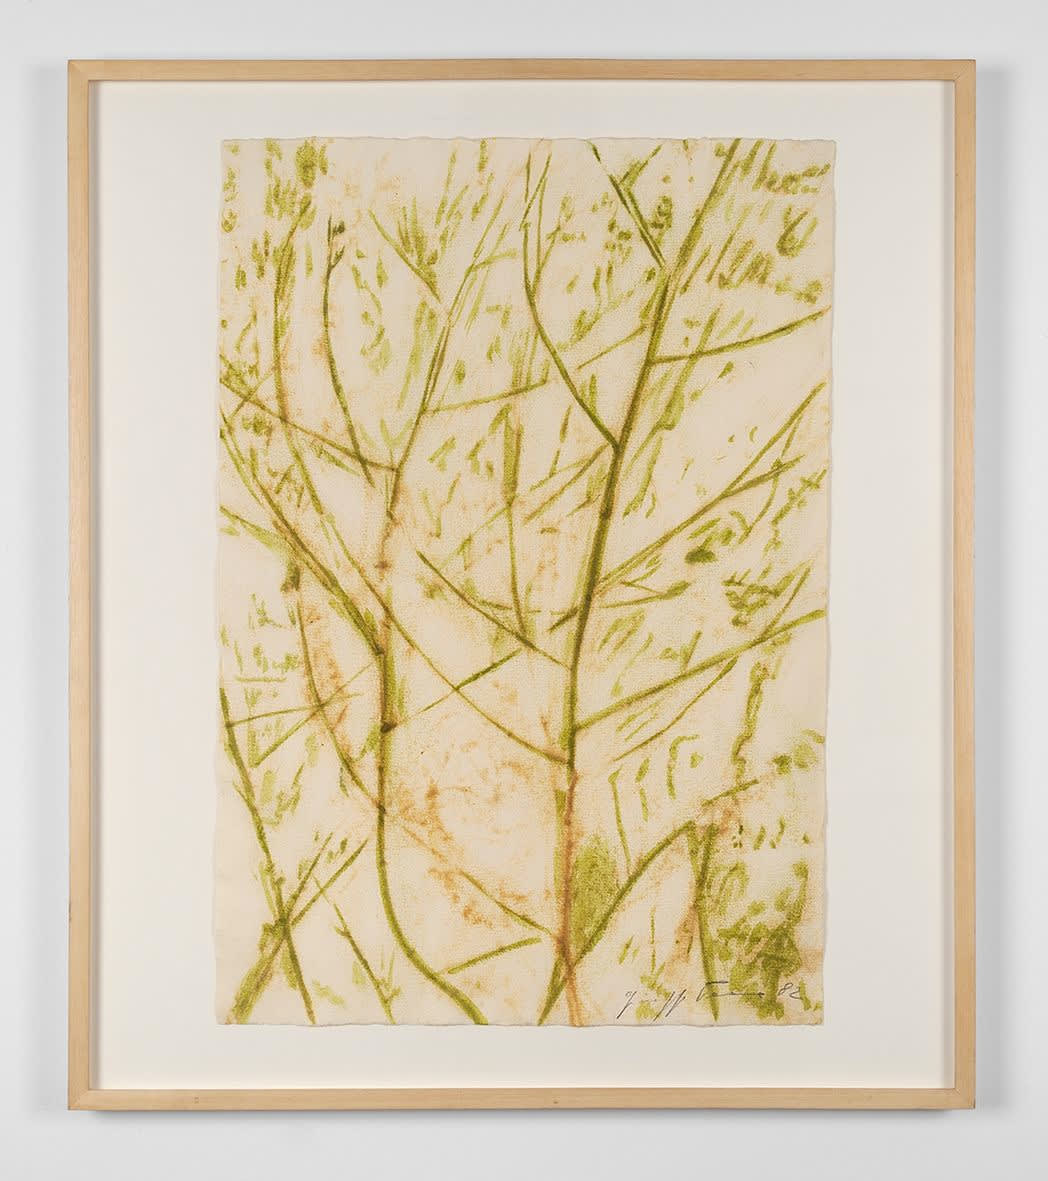 Giuseppe Penone, Green as a Tree, 1982